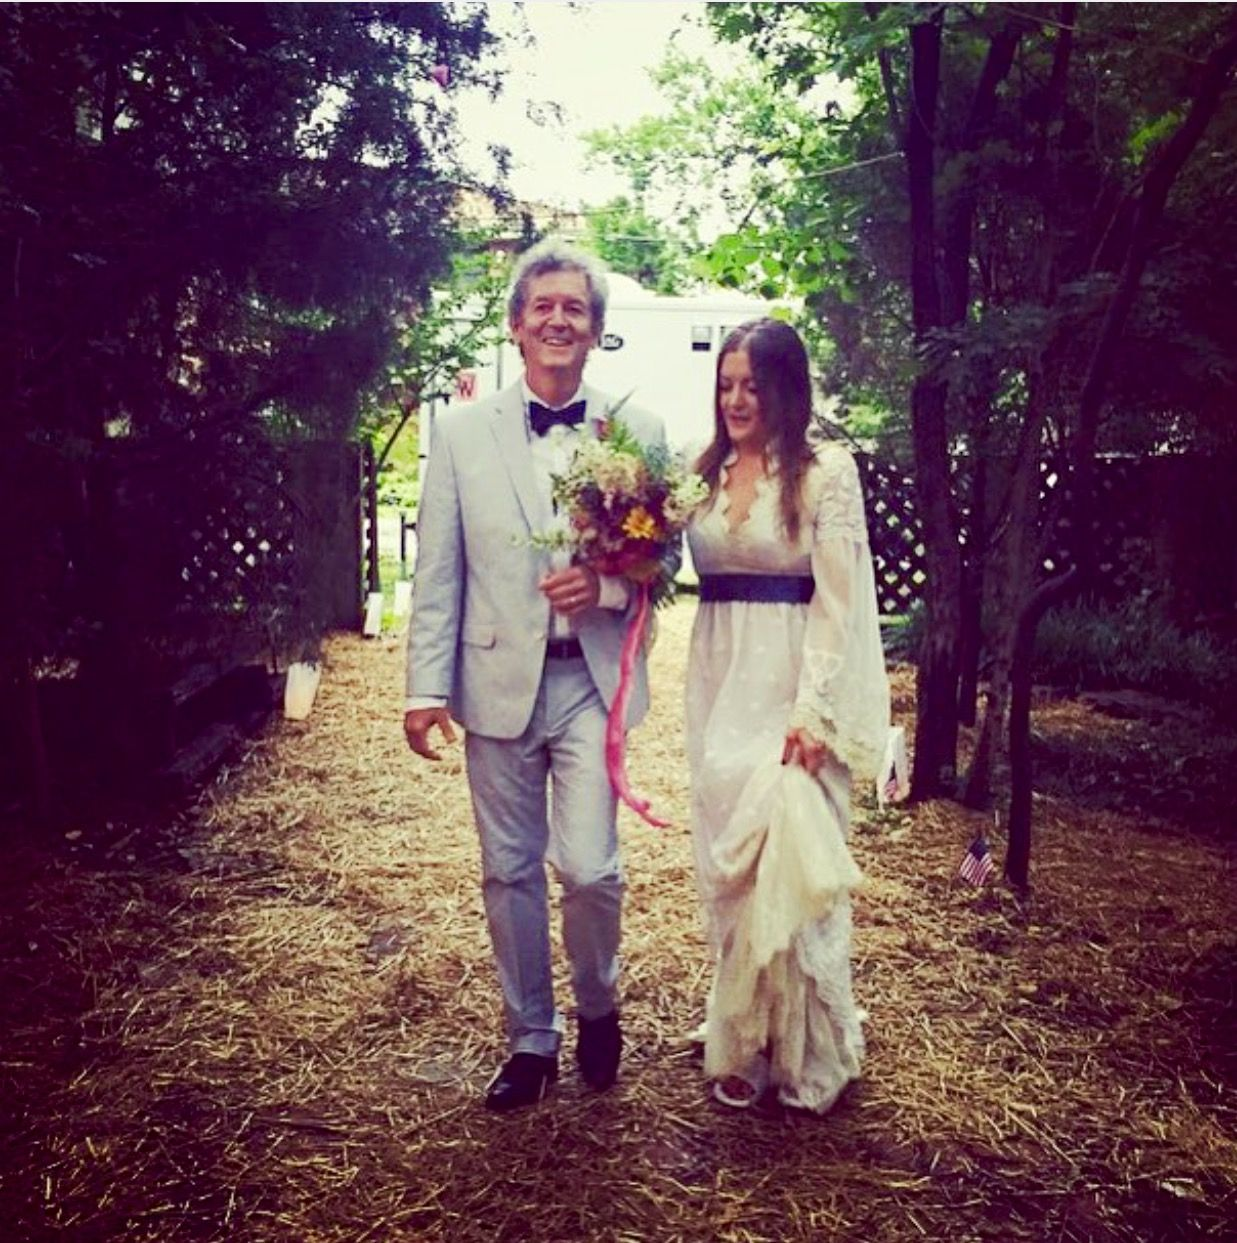 Bride S Father Died Before Her Wedding But Her Brother S: Rodney Crowell And His Daughter Chelsea On Her Wedding Day